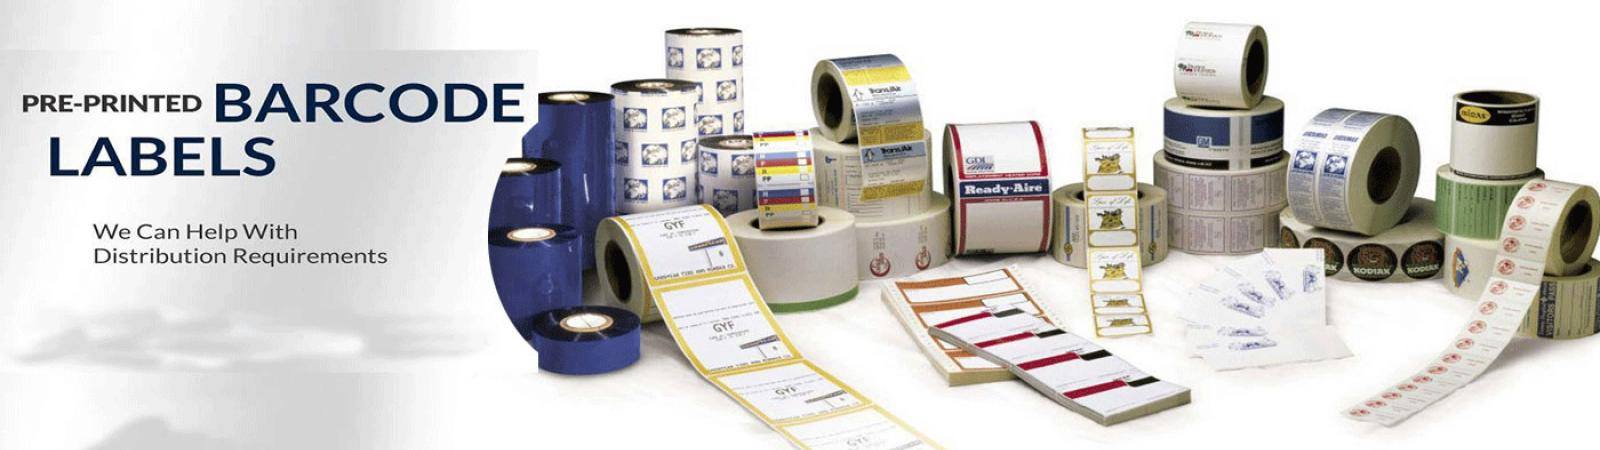 Indian Barcode Corporation - Printing of Labels, Tags